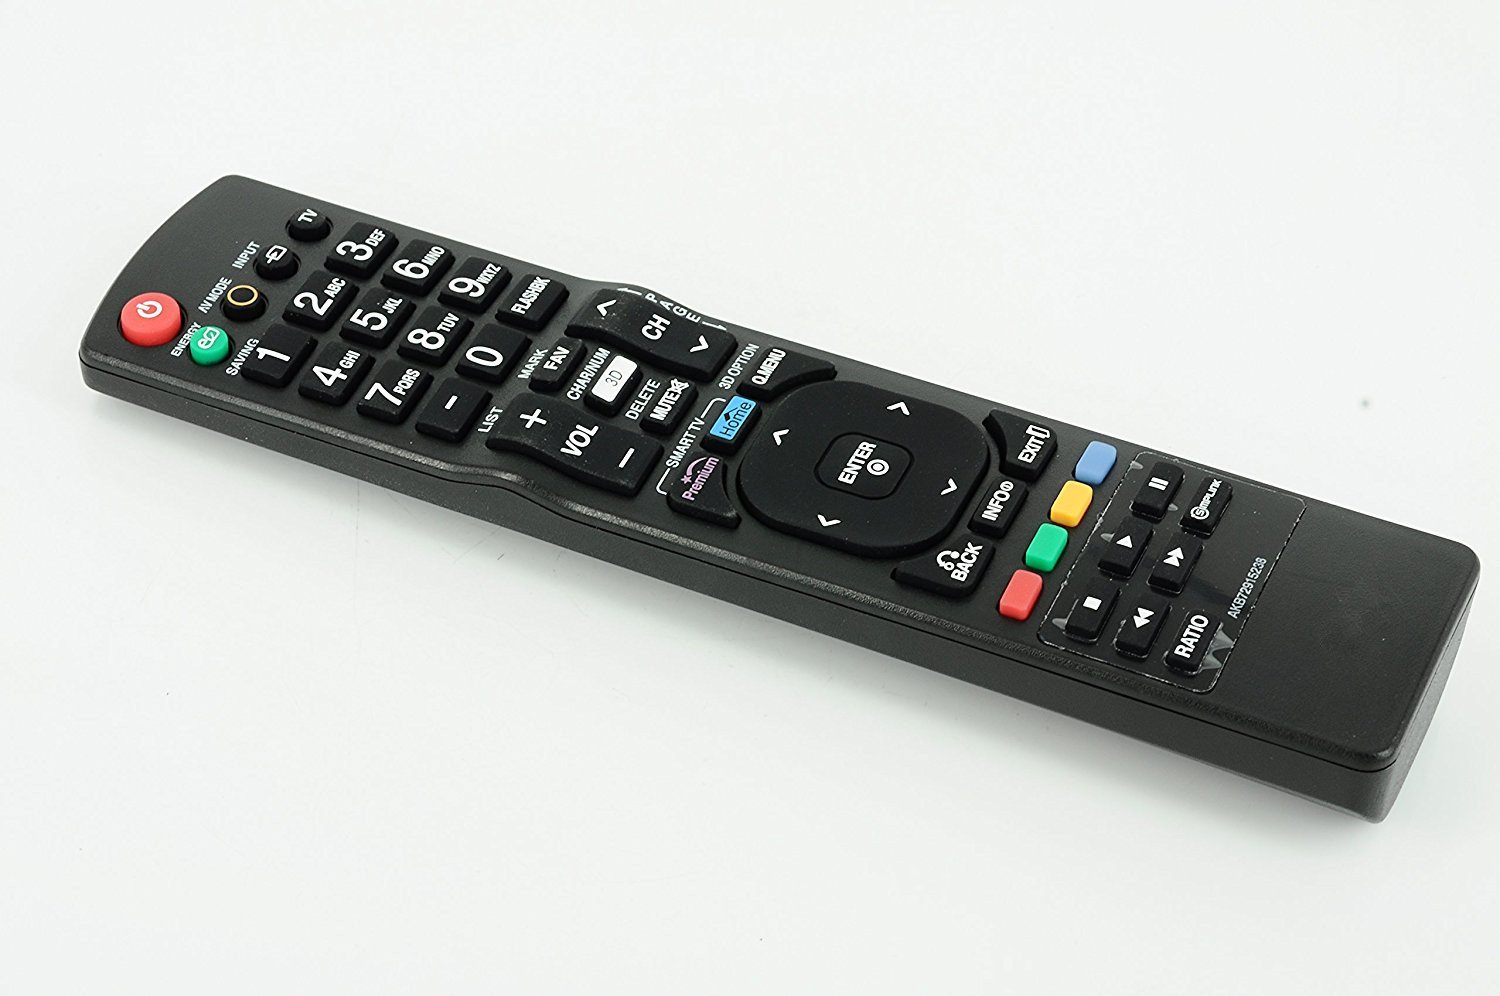 AWO AKB72915238 New Replacement Remote Control For LG 3D TVs 47LV3700 47LV5400 47LV5500 47LW5600 47LW5700